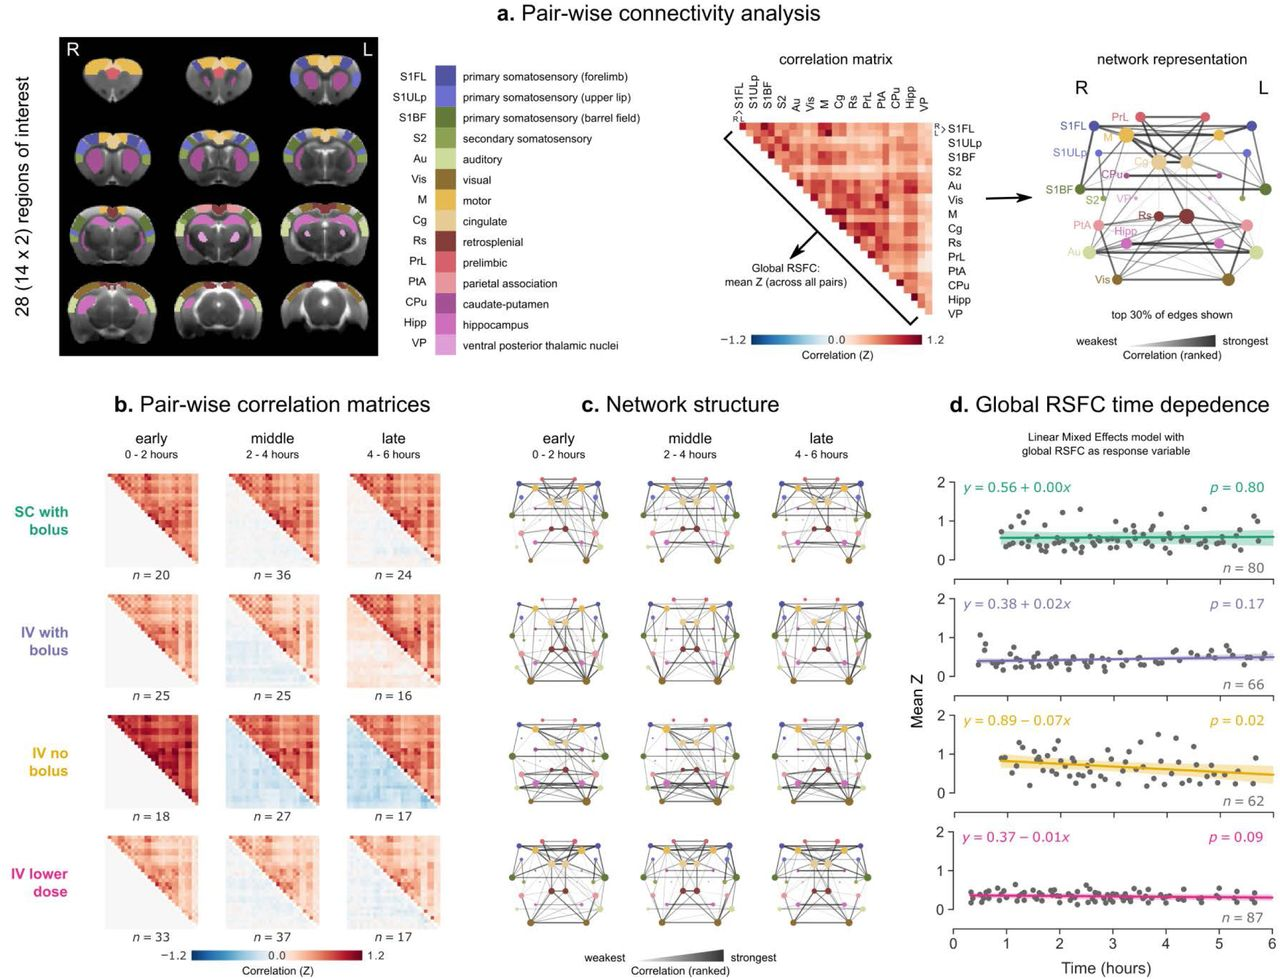 Temporal stability of fMRI in medetomidine-anesthetized rats